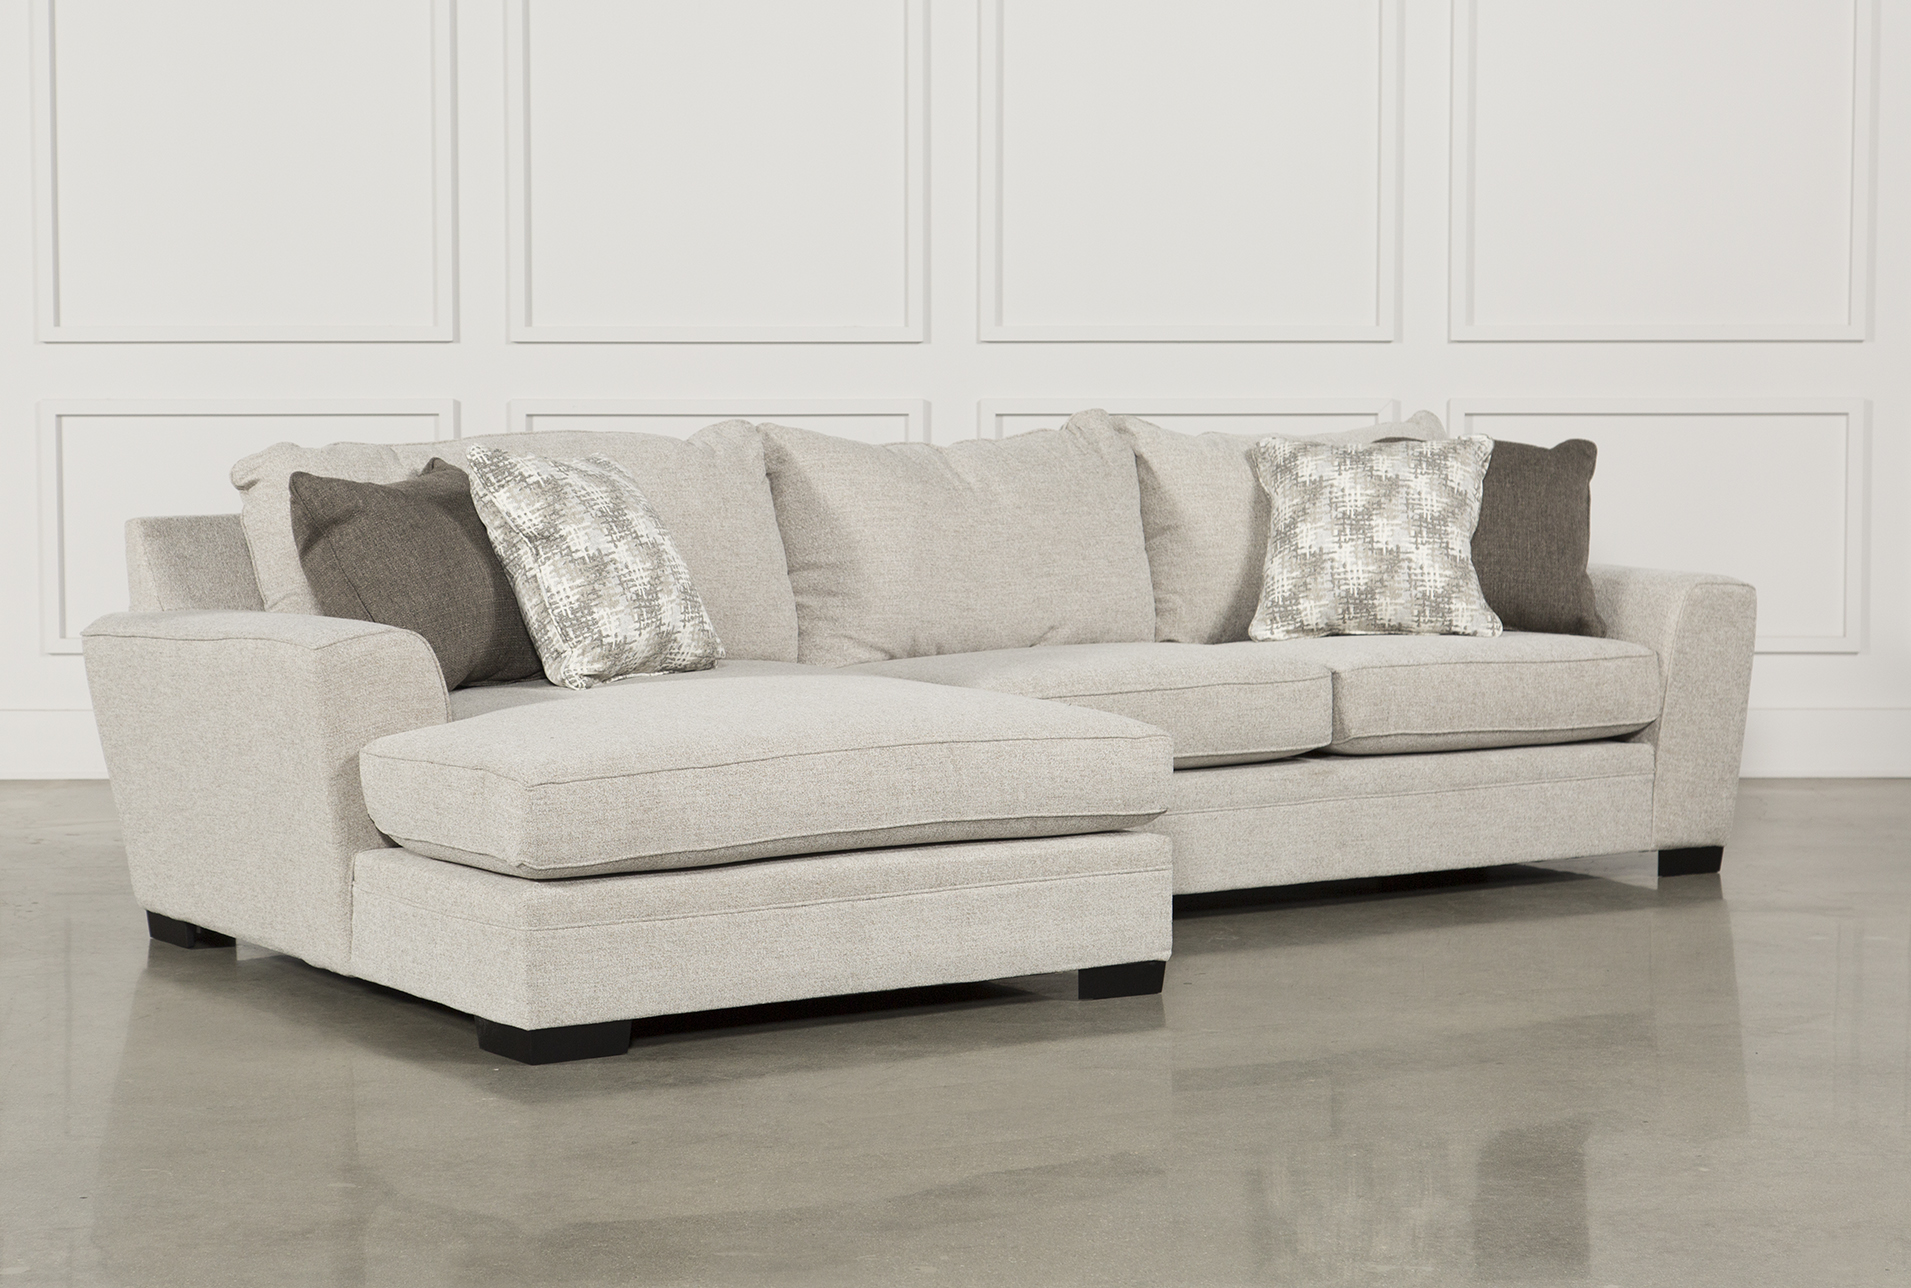 Delano 2 Piece Sectional W/Laf Oversized Chaise (Qty: 1) Has Been  Successfully Added To Your Cart.